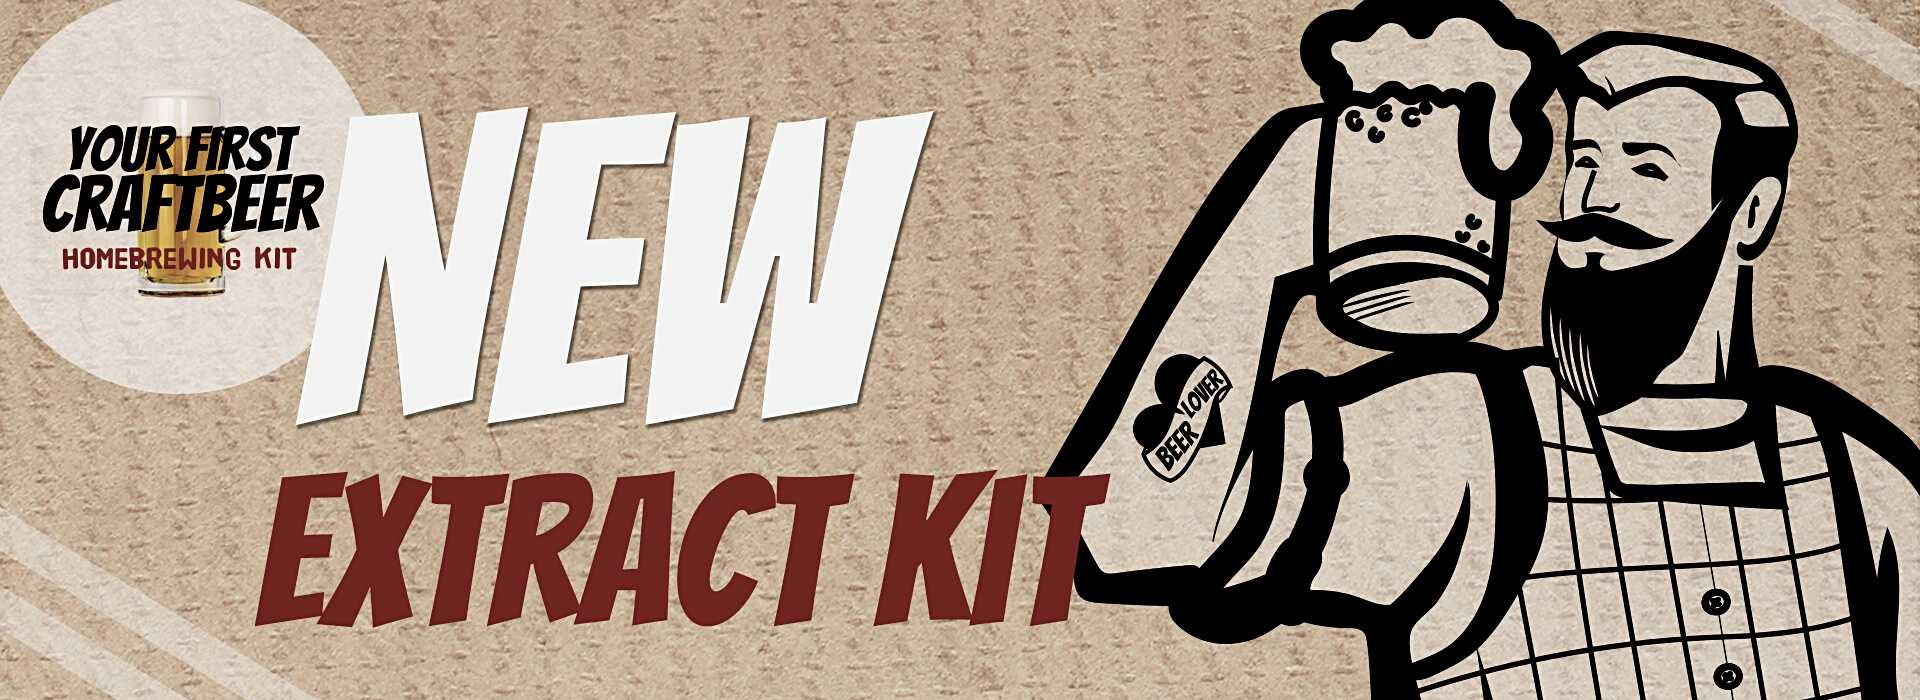 Extract Kit Homebrewing